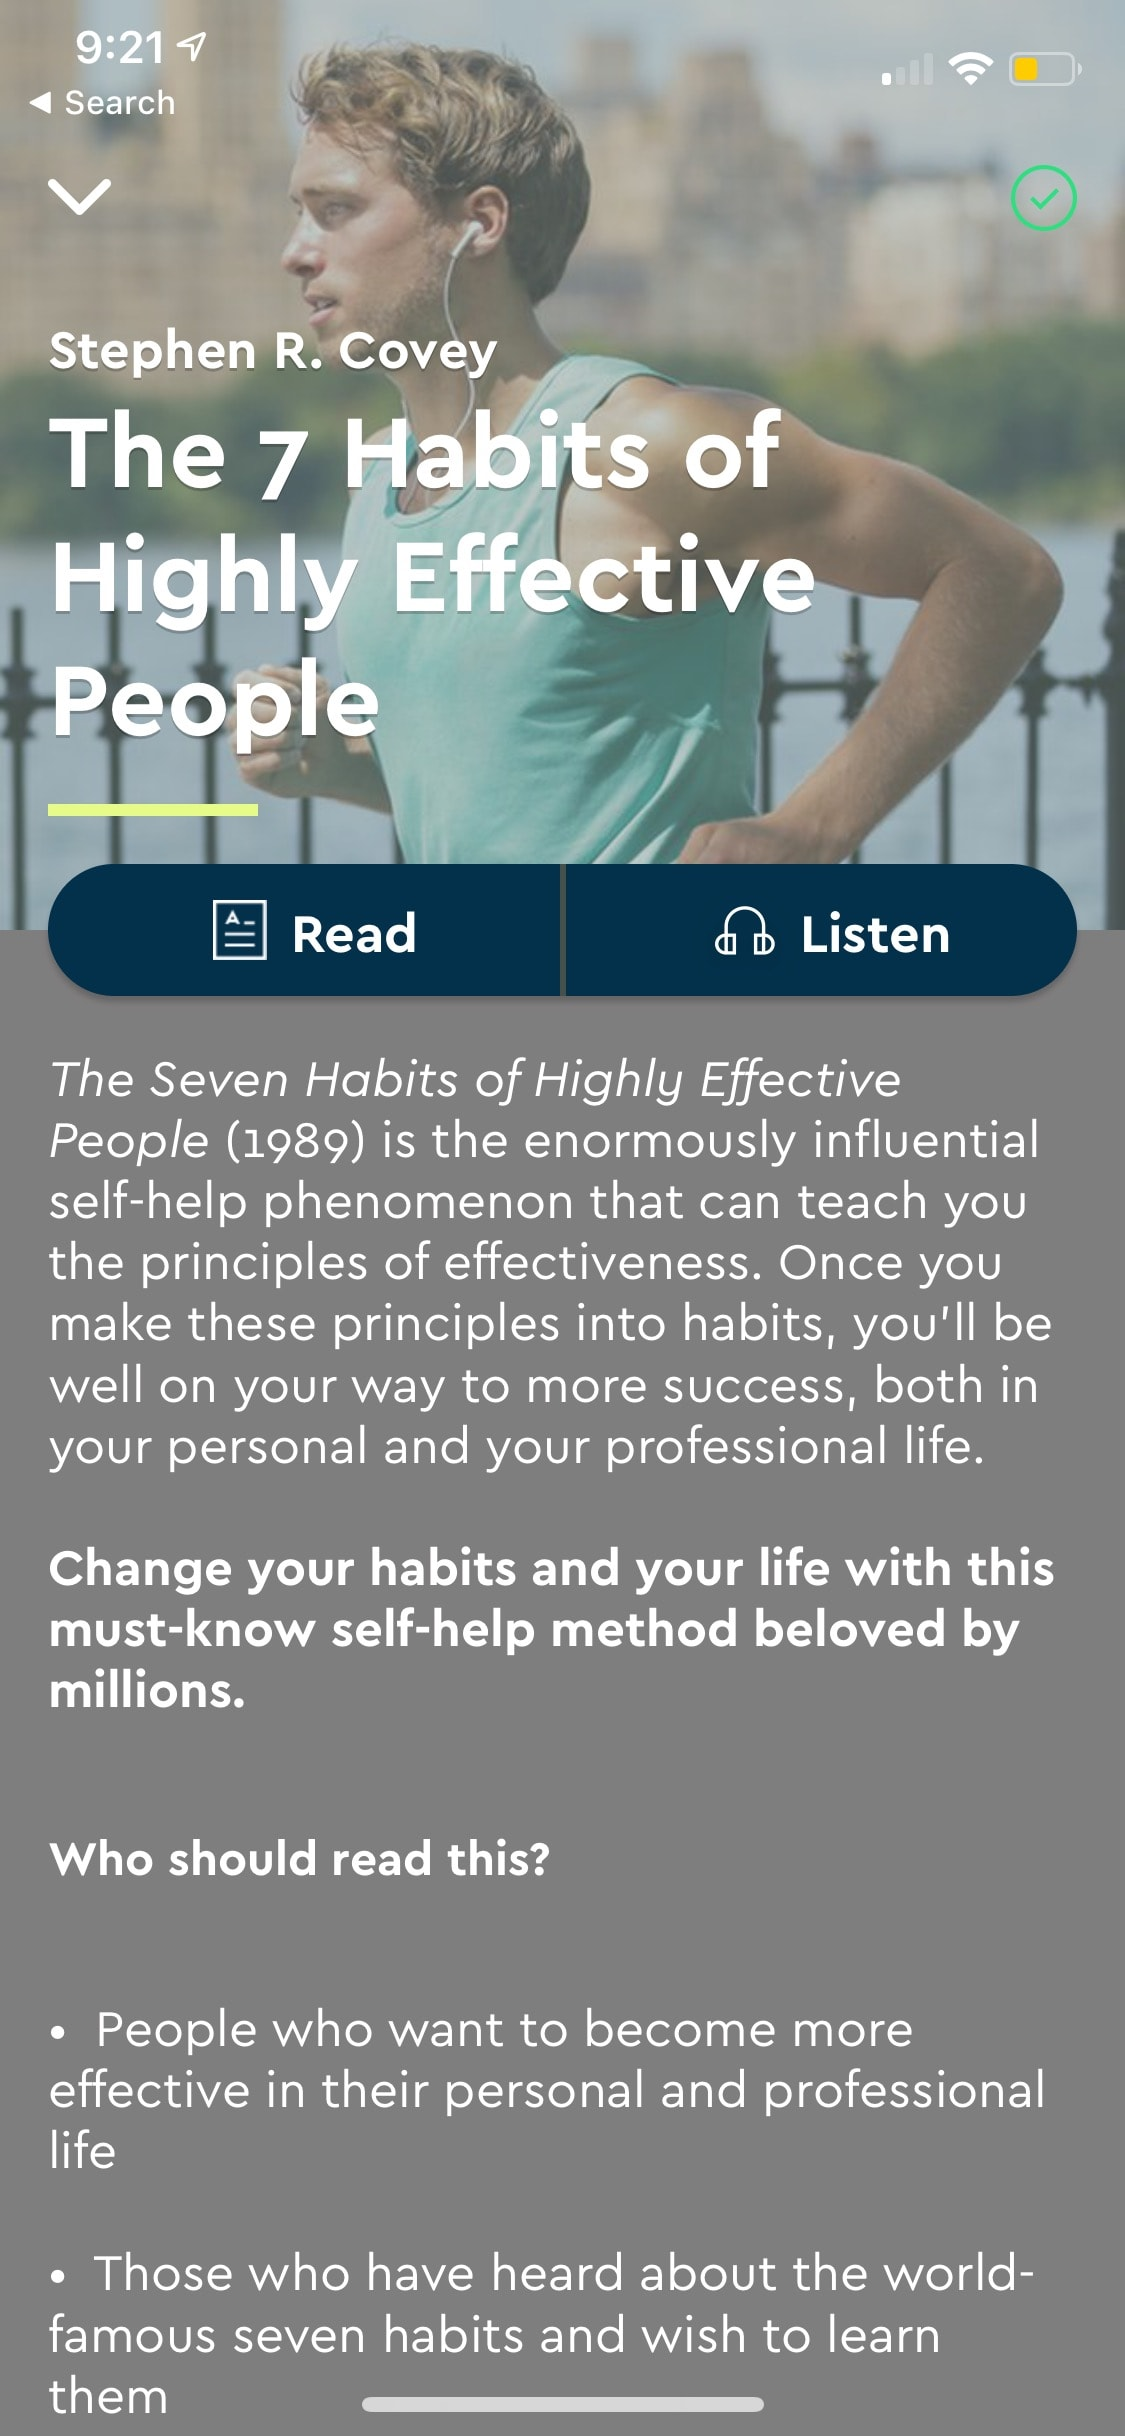 Content screen by Blinkist on iOS from UIGarage